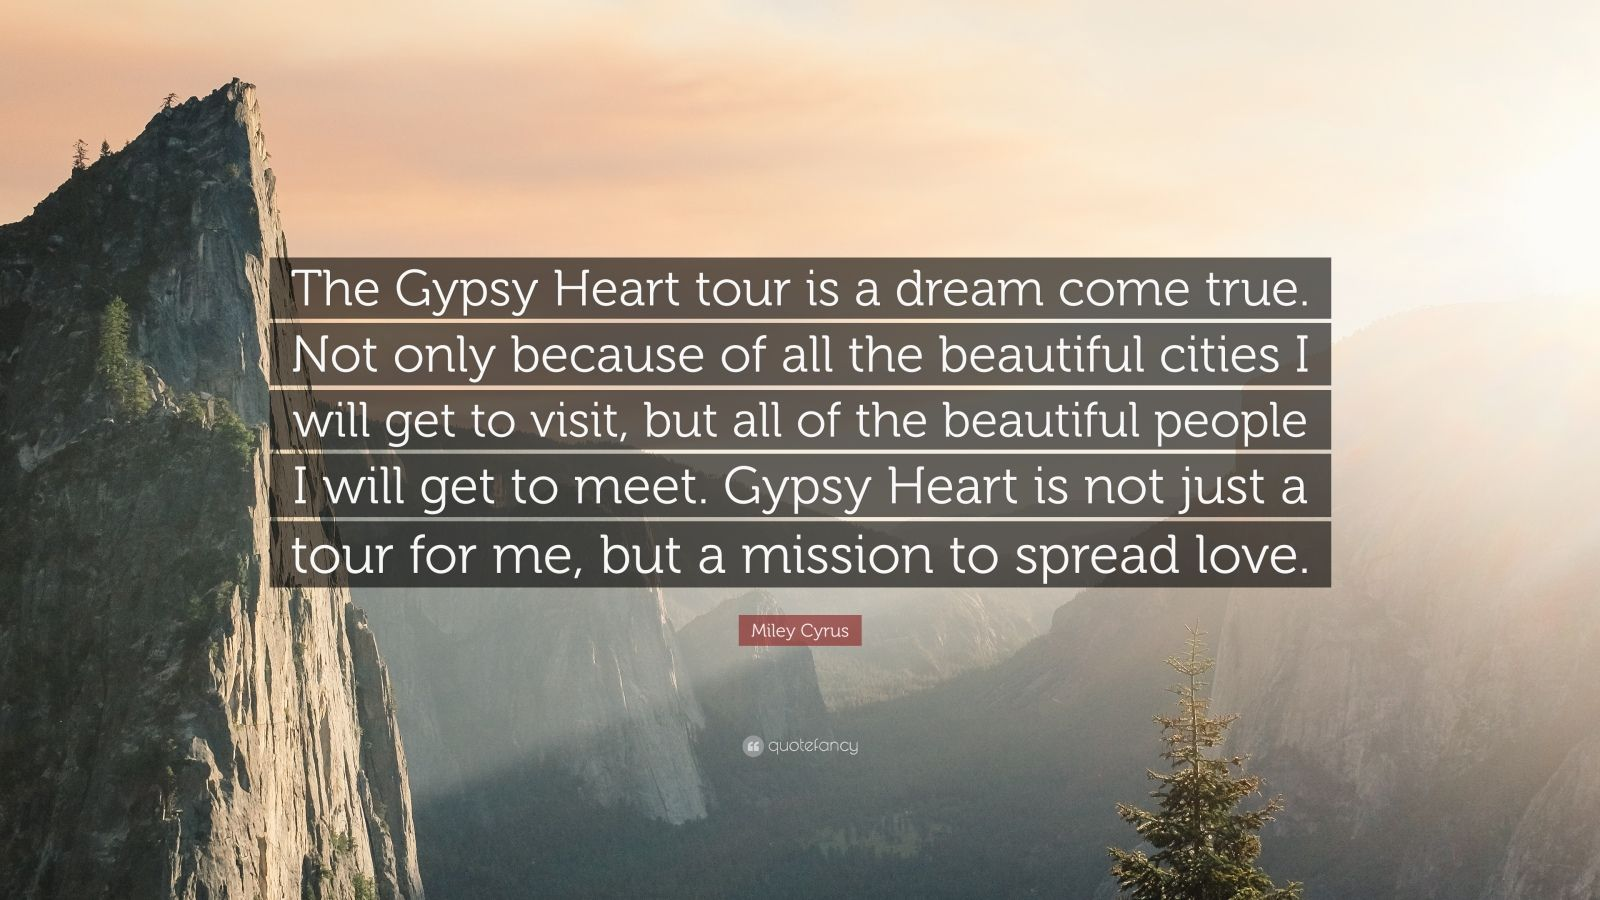 "Miley Cyrus Quote: ""The Gypsy Heart tour is a dream come true. Not only because of all the beautiful cities I will get to visit, but all of the beautiful people I will get to meet. Gypsy Heart is not just a tour for me, but a mission to spread love."""